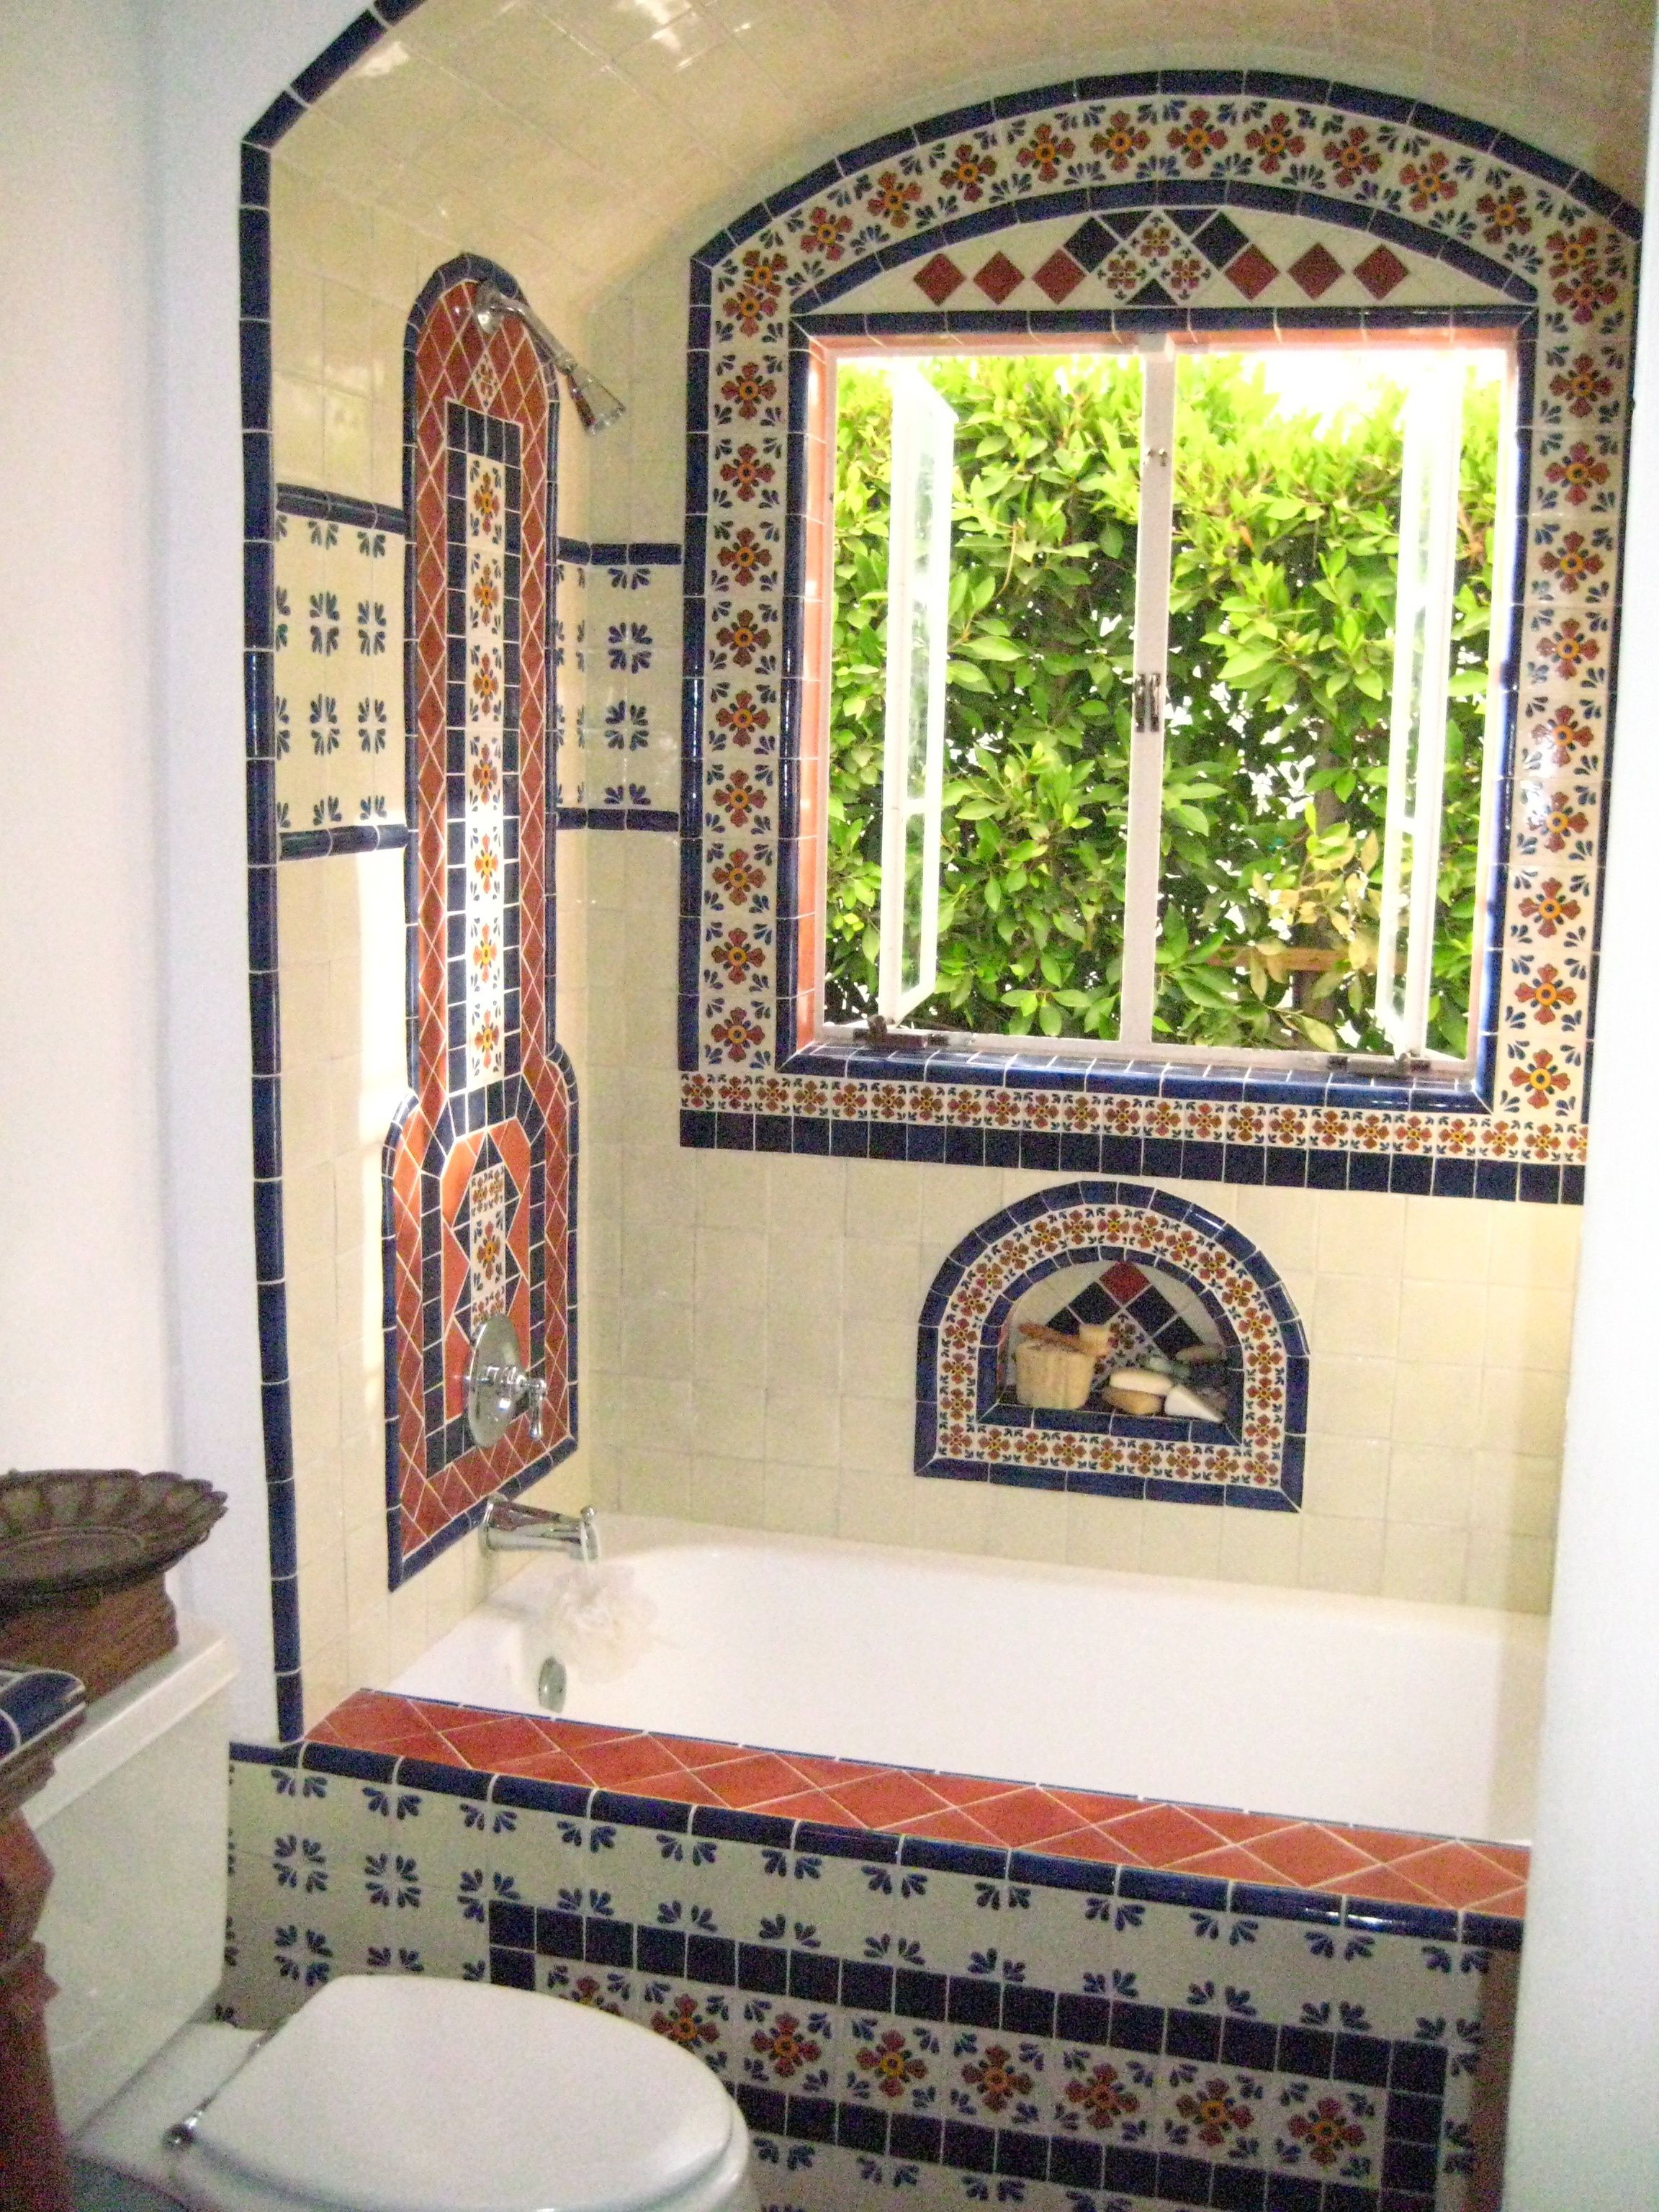 I Like The Use Of Mexican Tile @ Tub And In Shower. Would Like A Larger  Built In To Hold Shampoos, Etc.